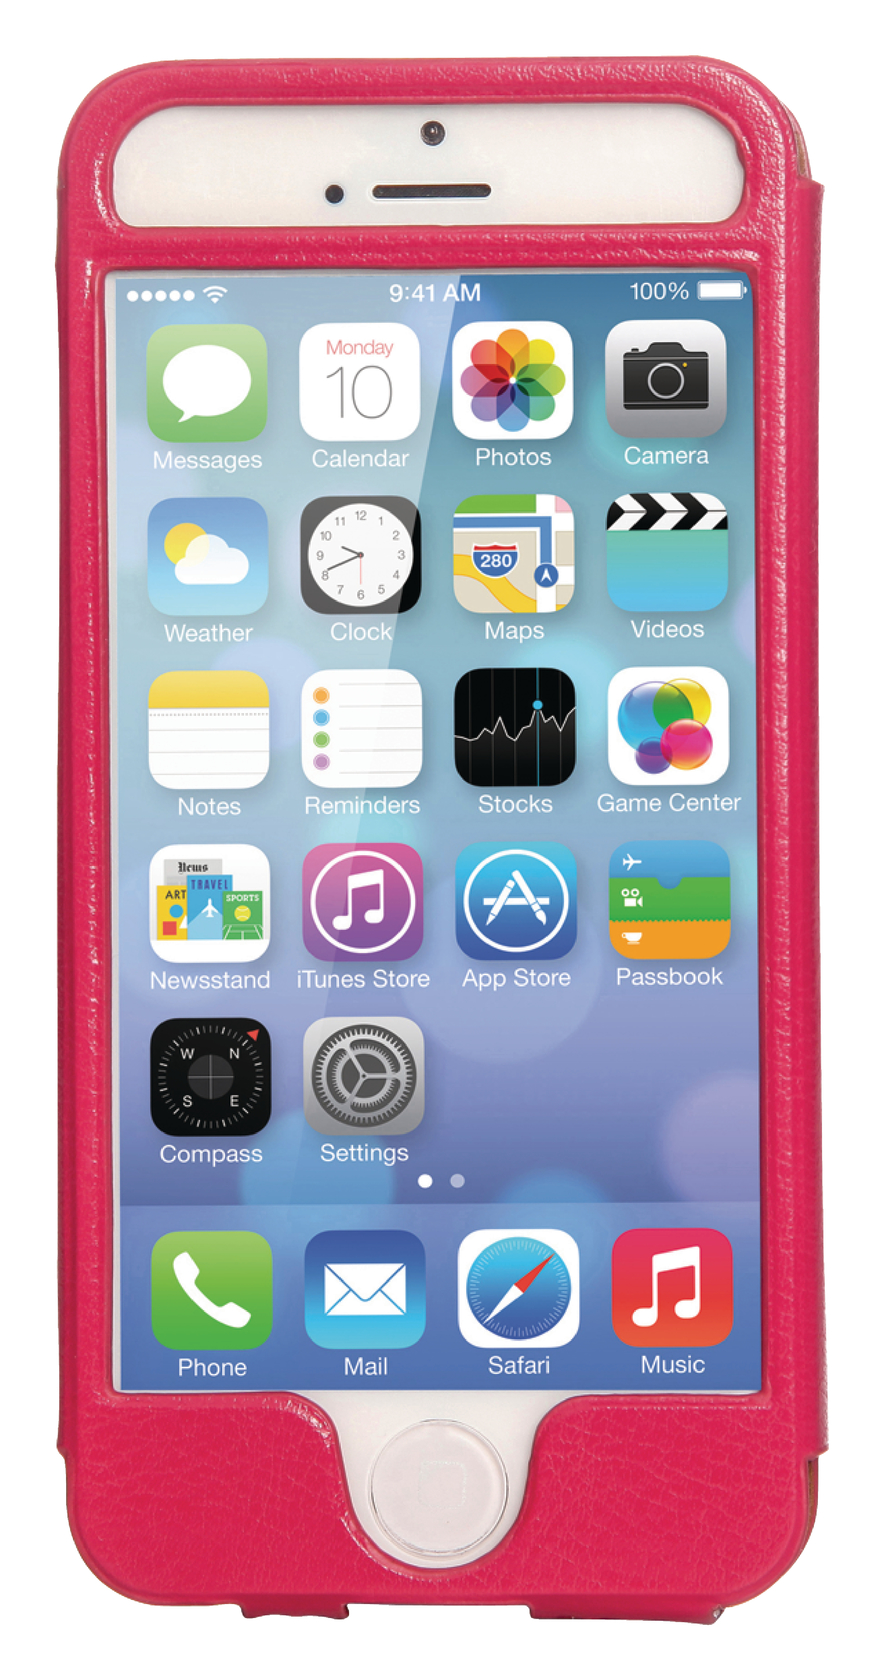 Mosaic Theory Mtel21-001 pnk Phone Case Leather For Iphone 5s-5 Pink